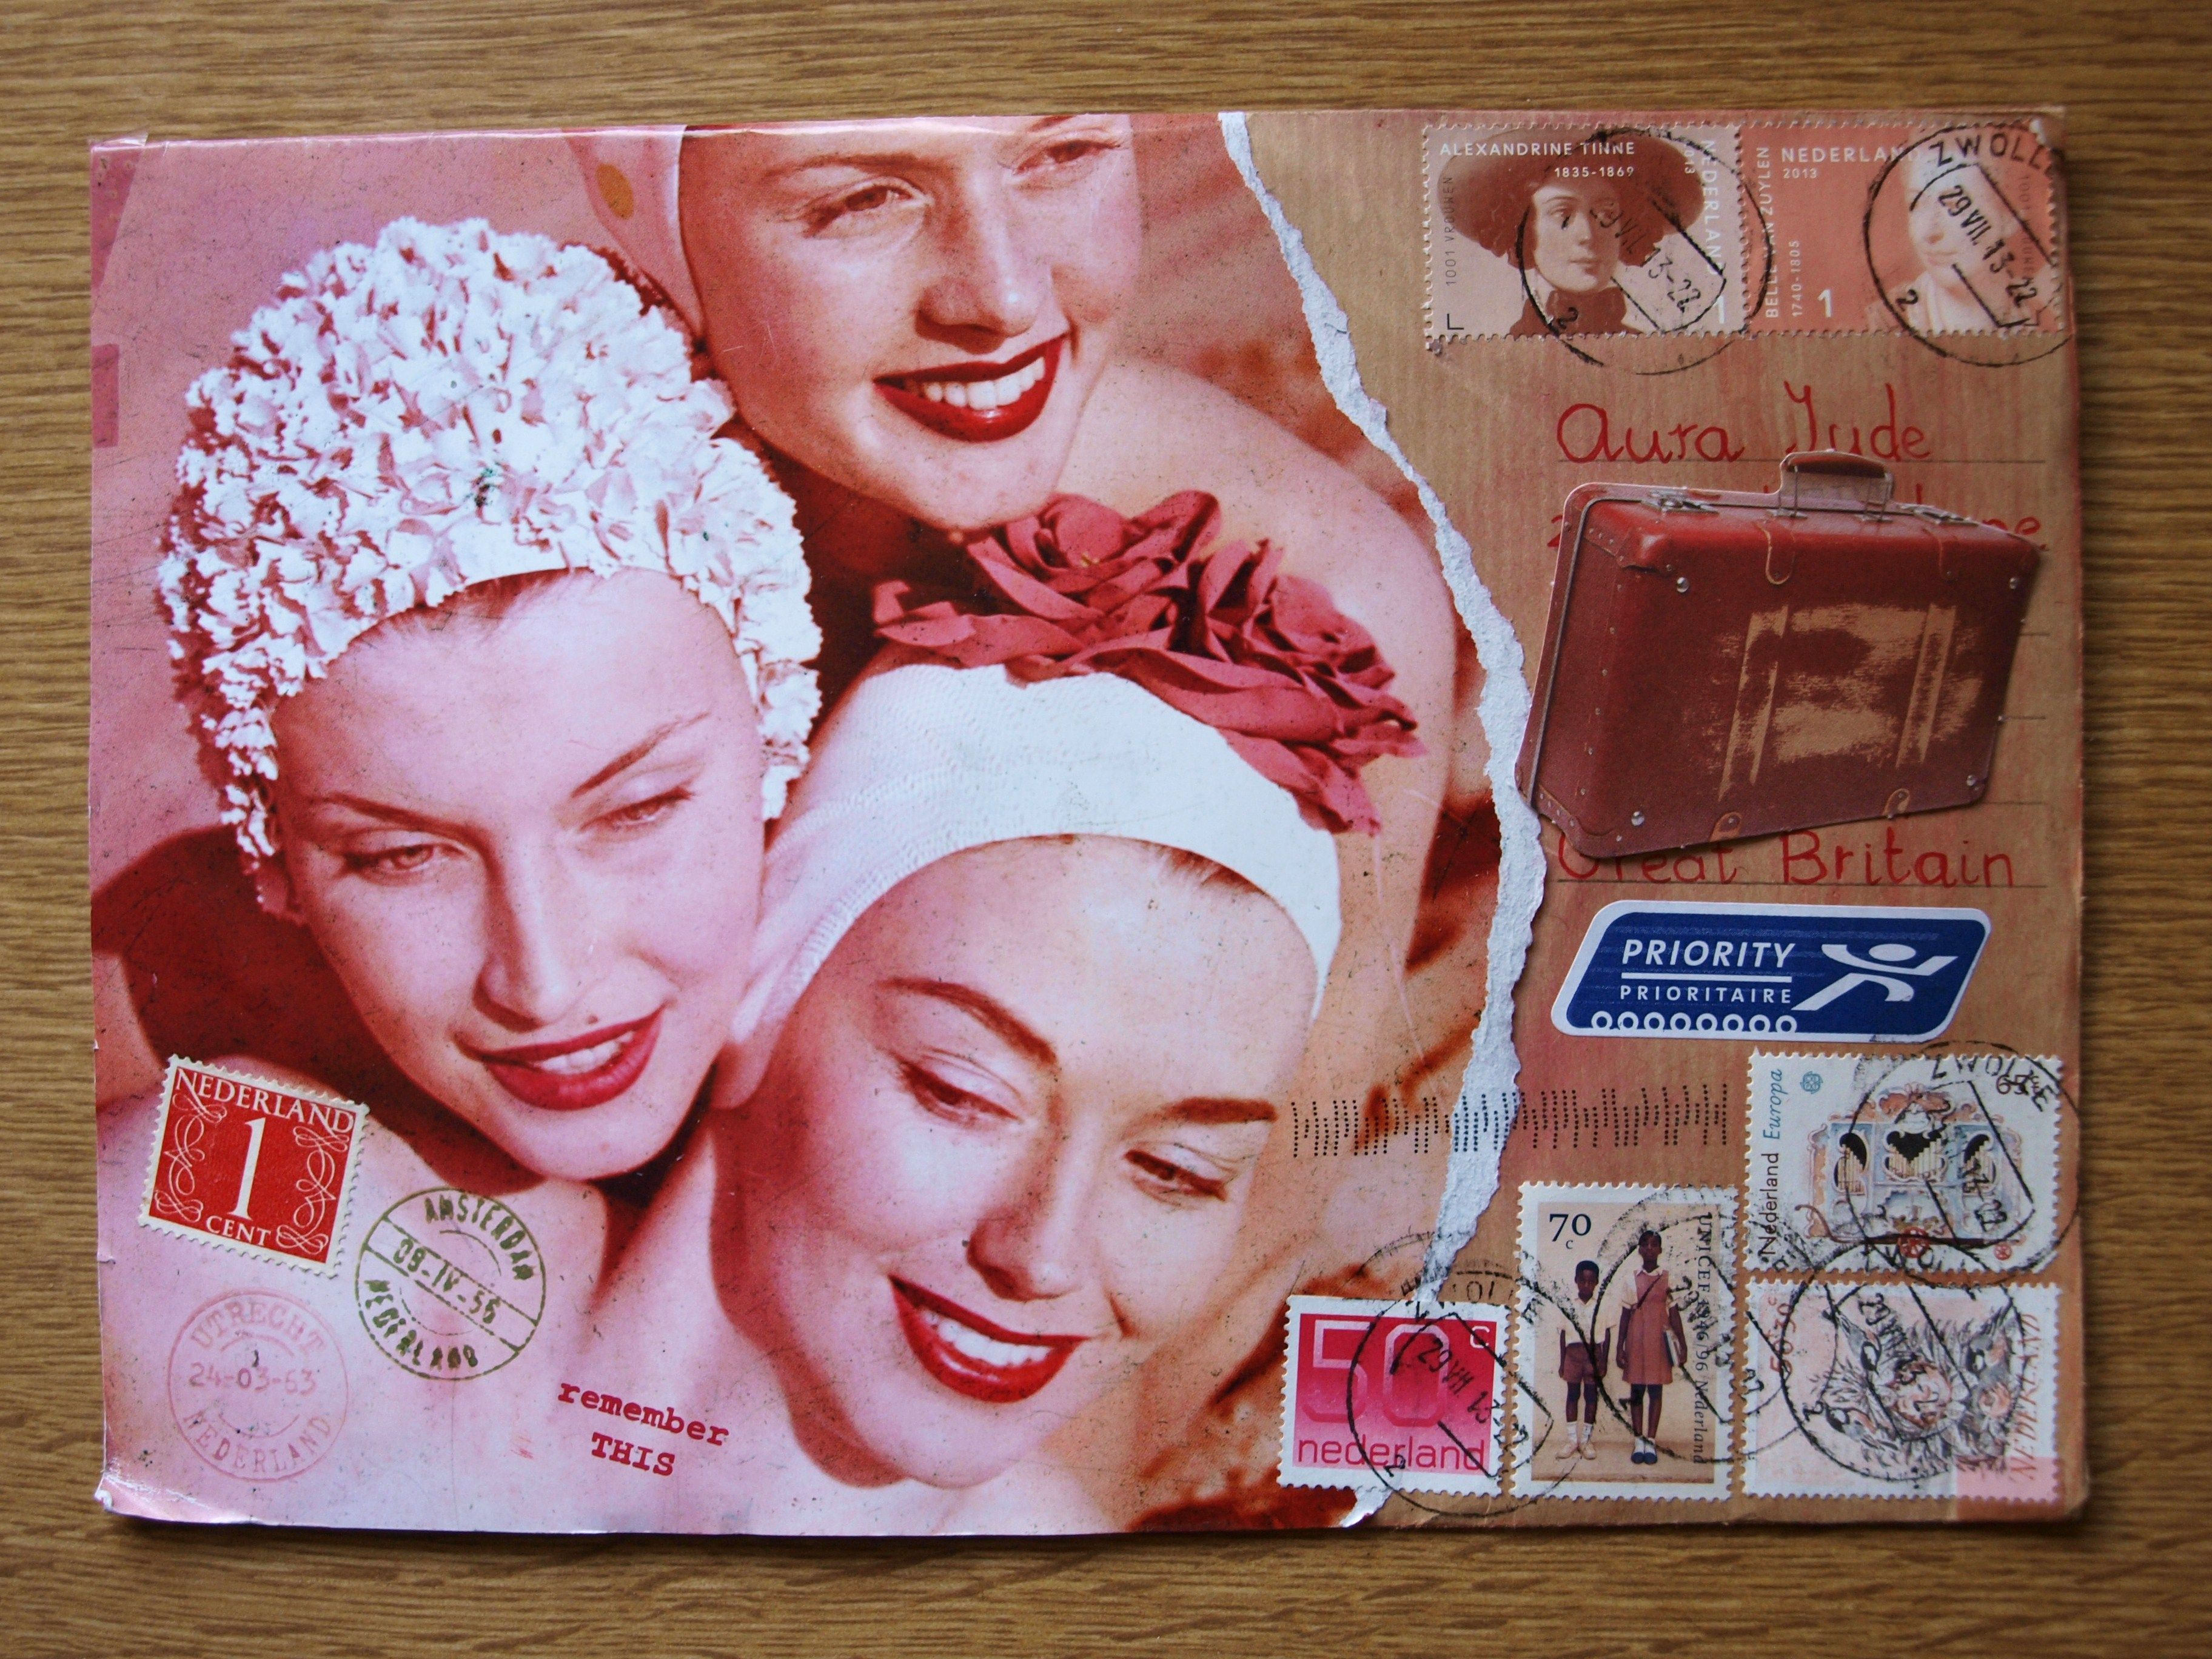 Vintage girls wearing bathing caps. Surprise mail full of holiday stuff.